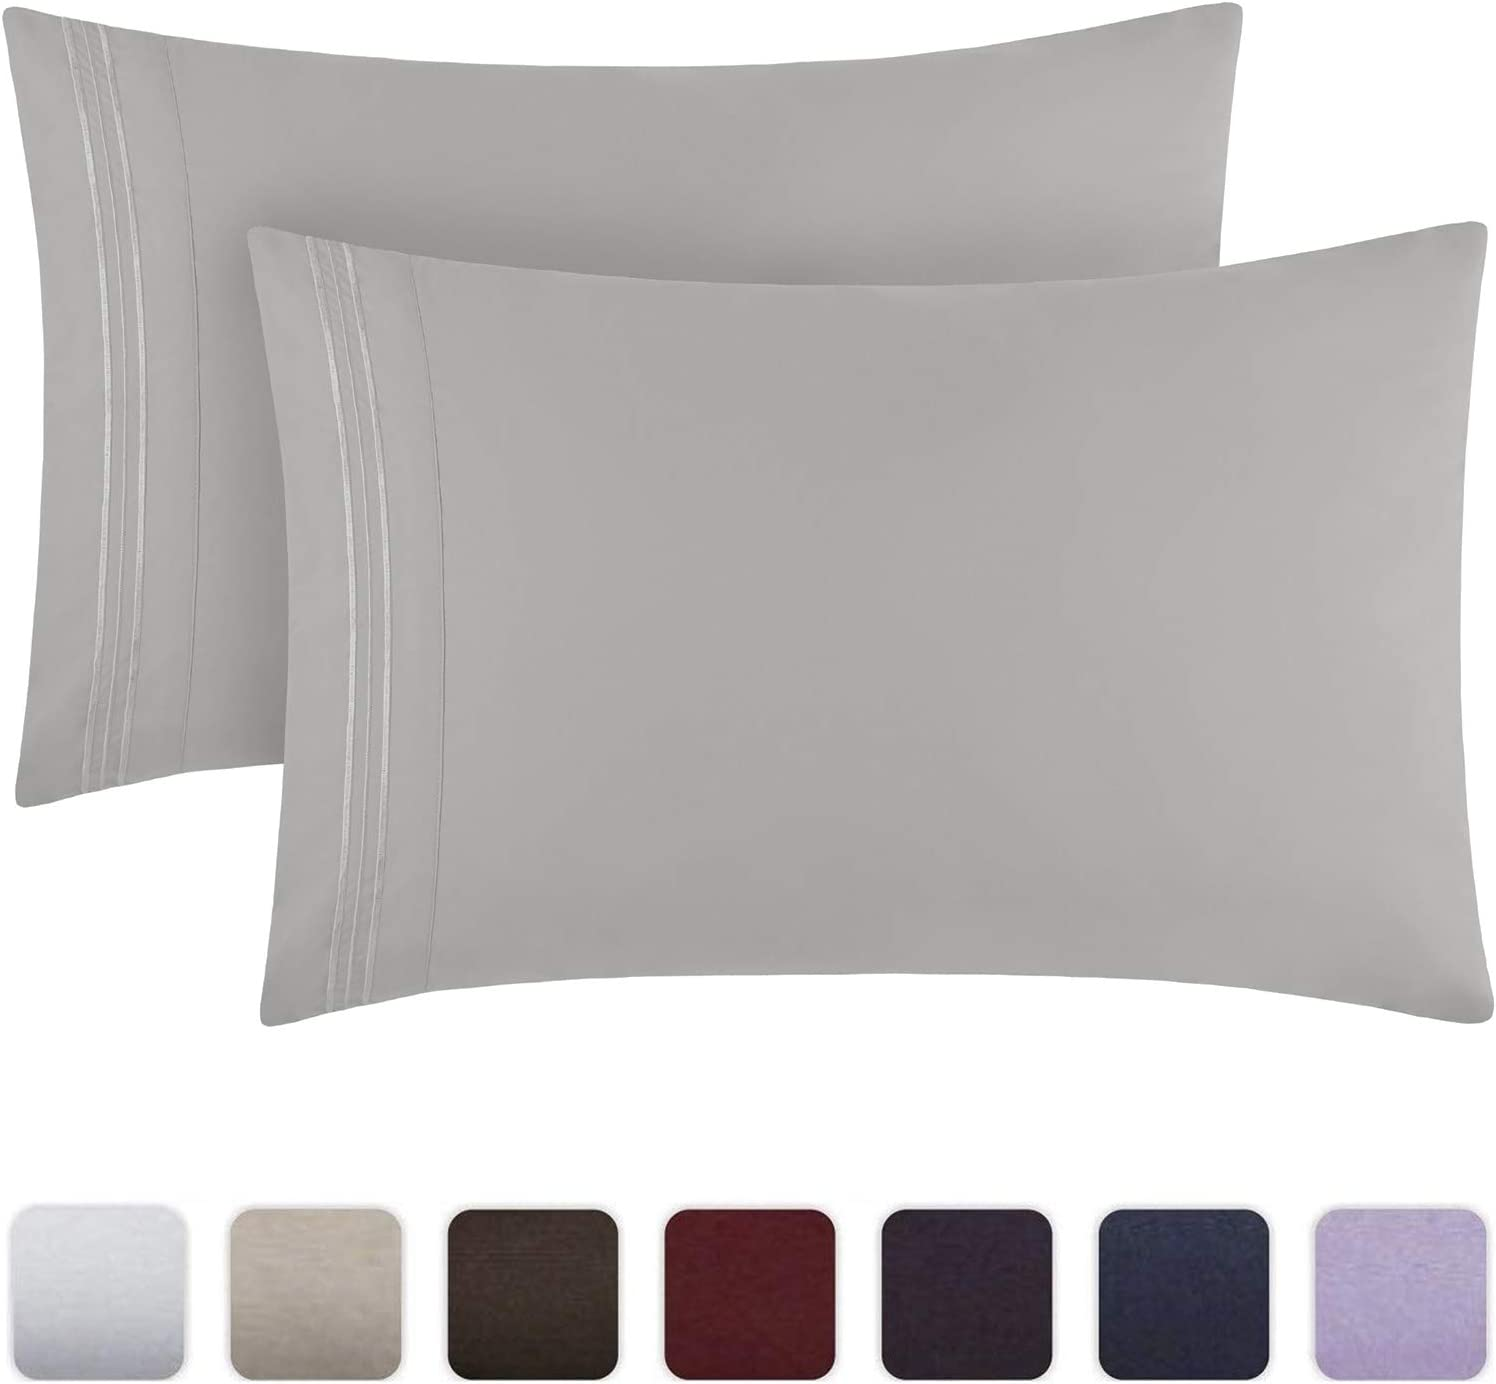 Mellanni Luxury Pillowcase Set - Brushed Microfiber 1800 Bedding - Wrinkle, Fade, Stain Resistant - Hypoallergenic (Set of 2 Standard Size, Light Gray): Home & Kitchen